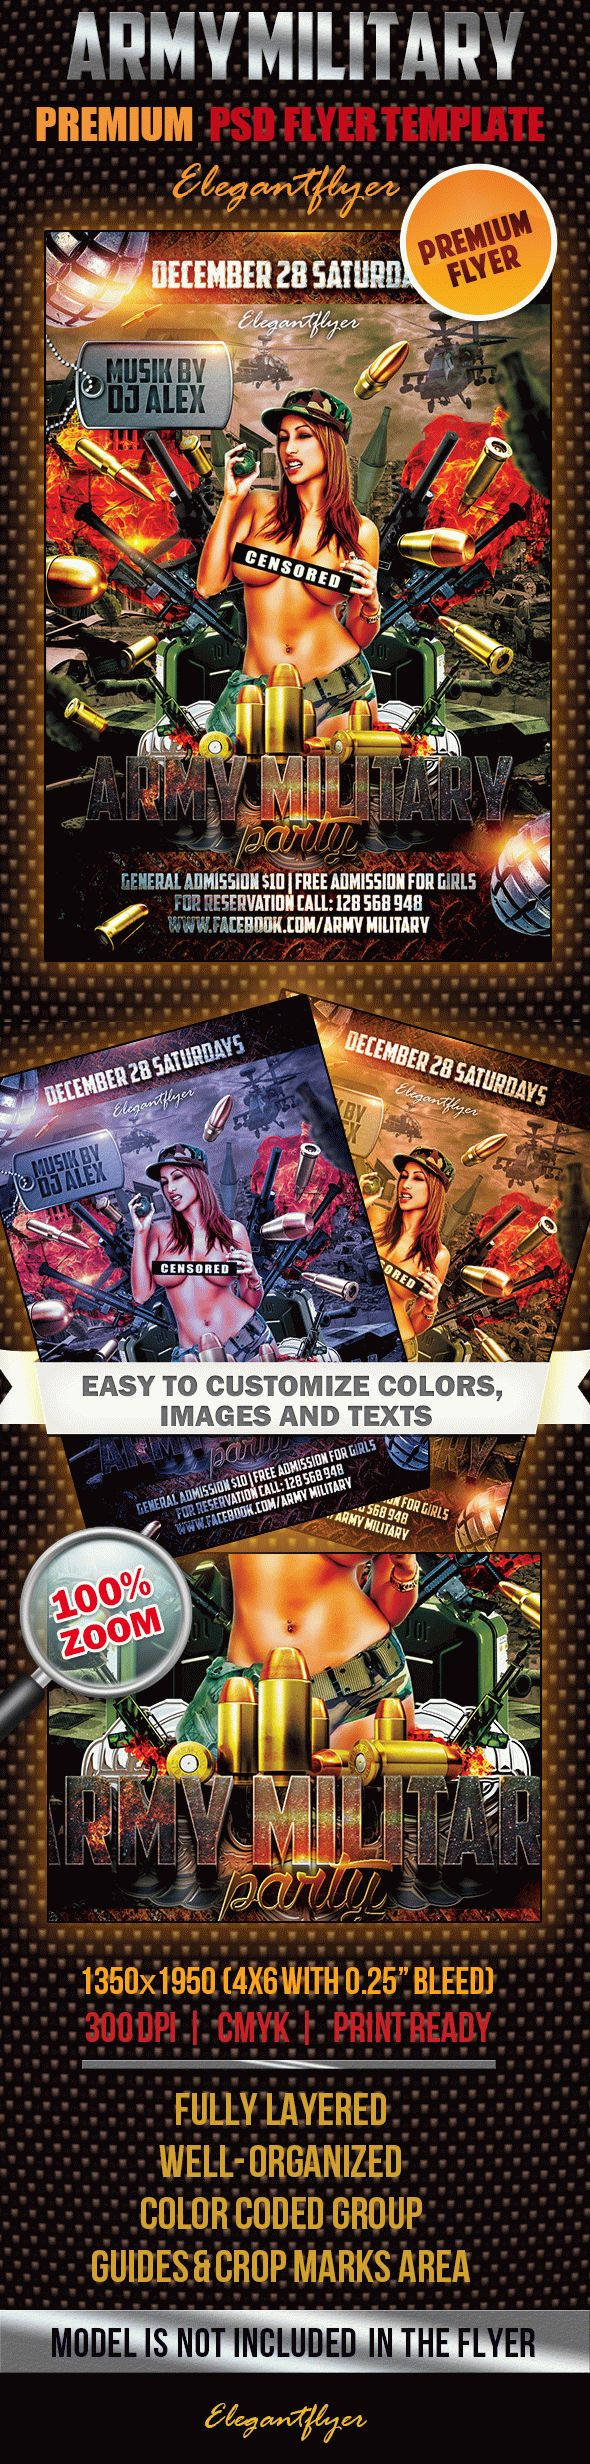 Army Military Party Poster Template